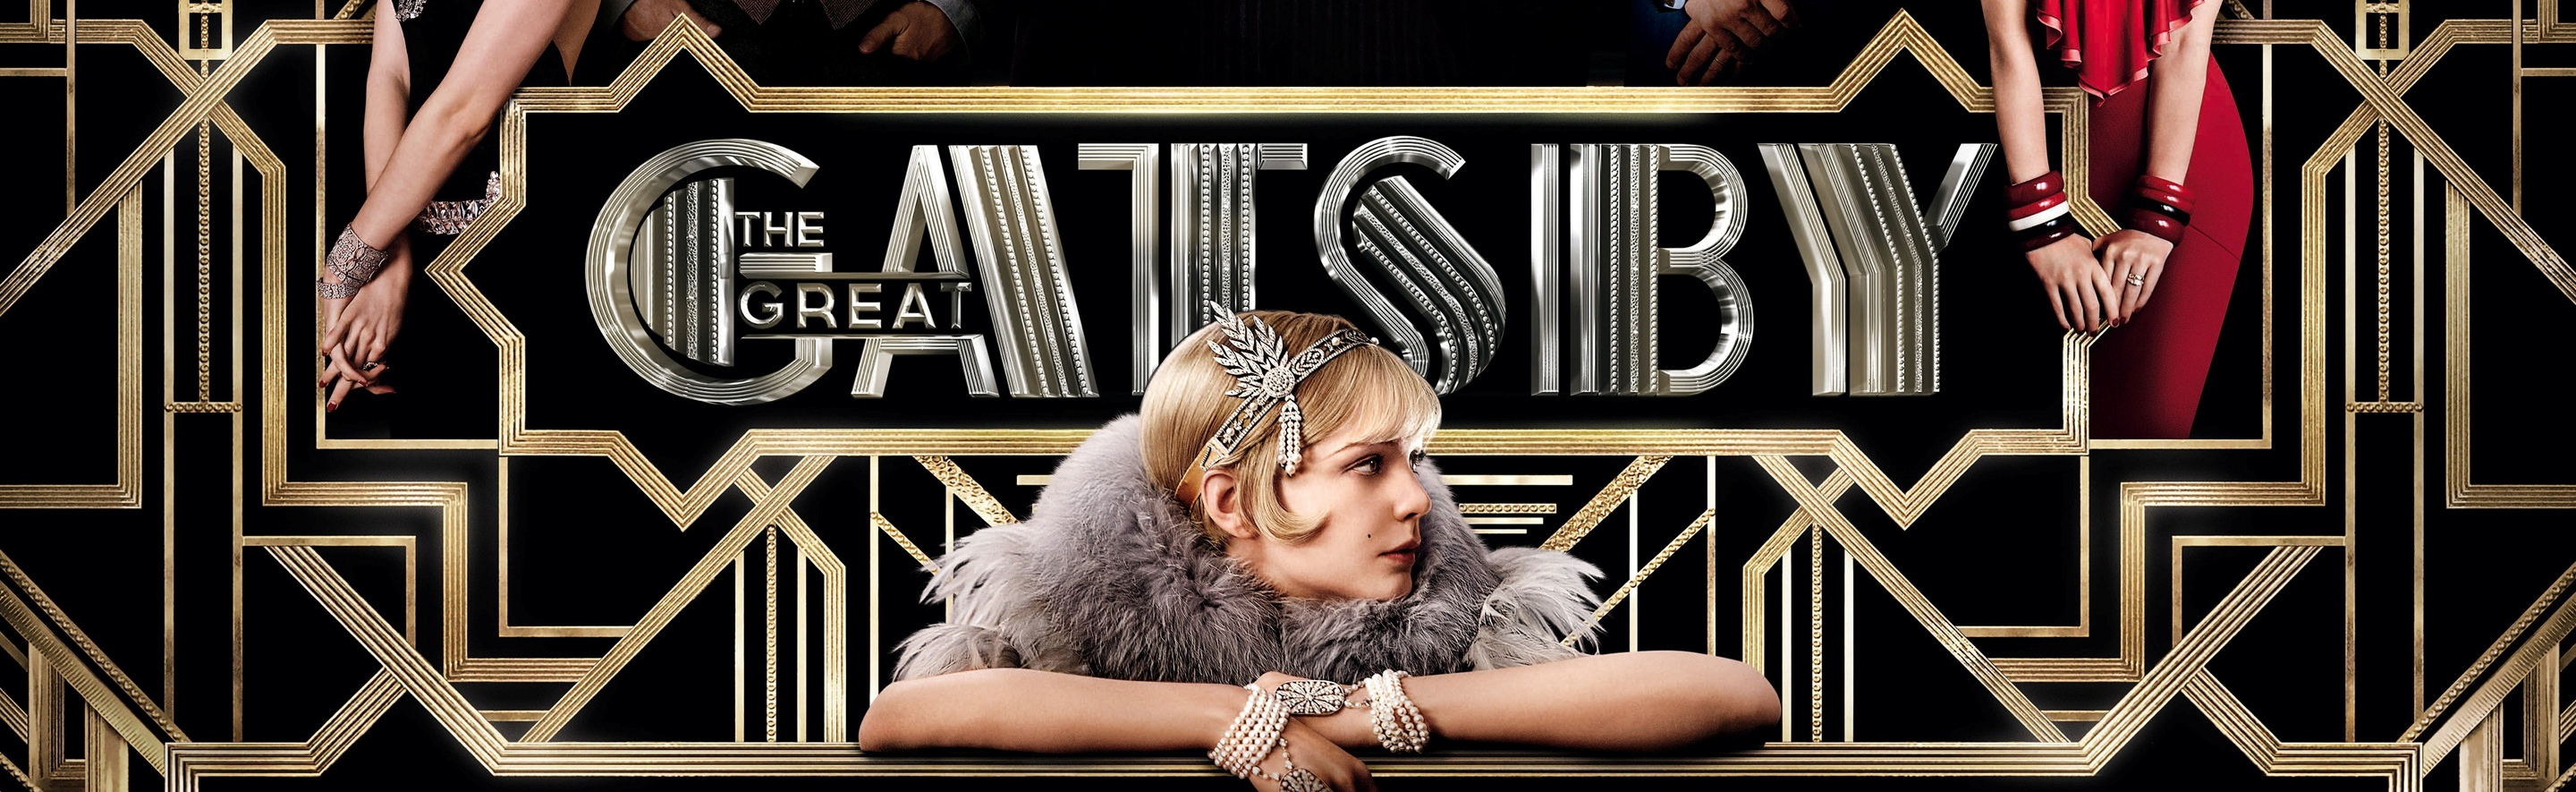 the_great_gatsby_